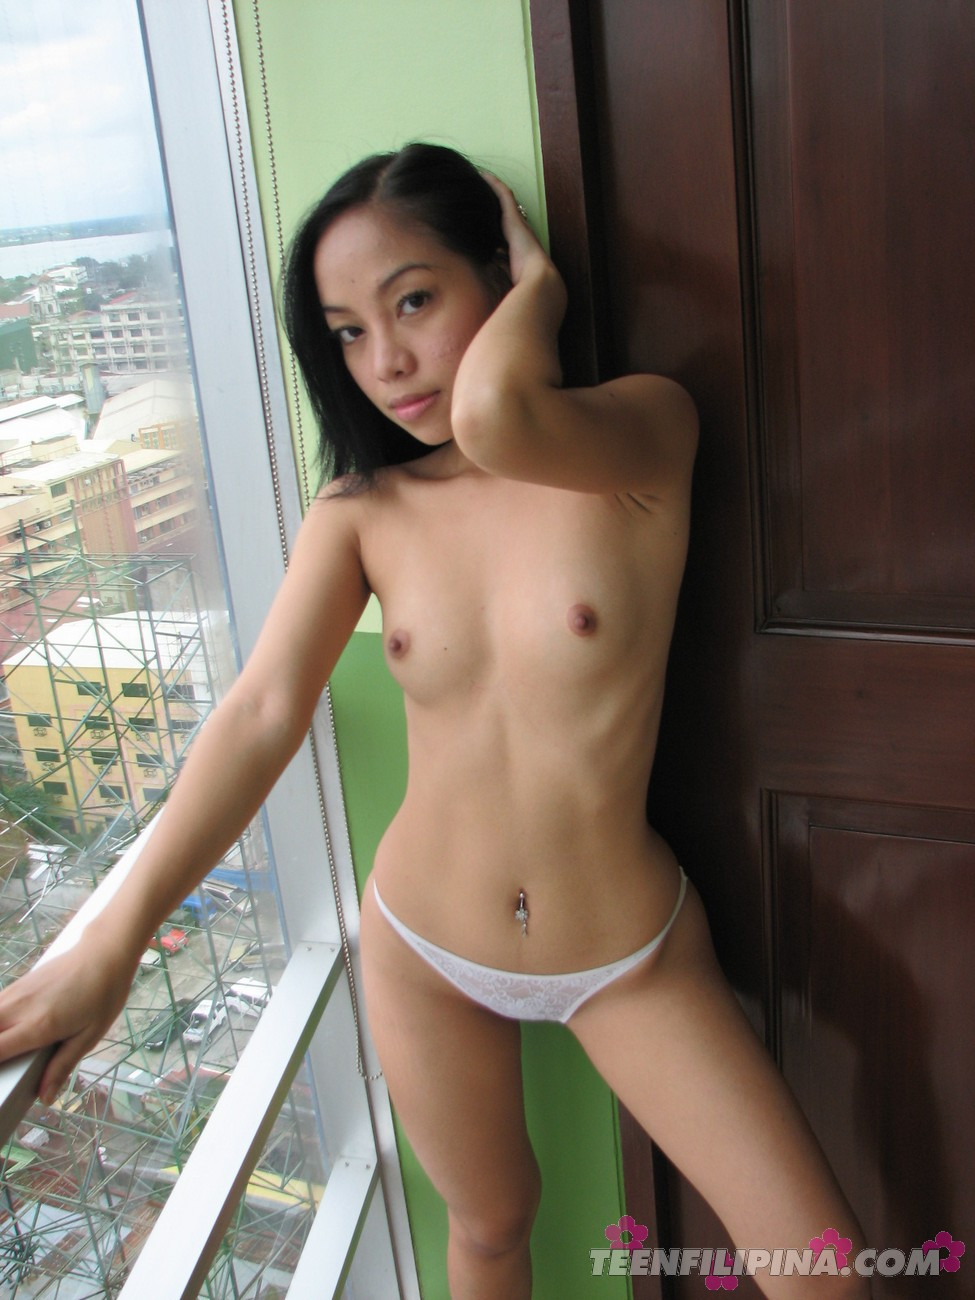 Filipina roommate nude girls are